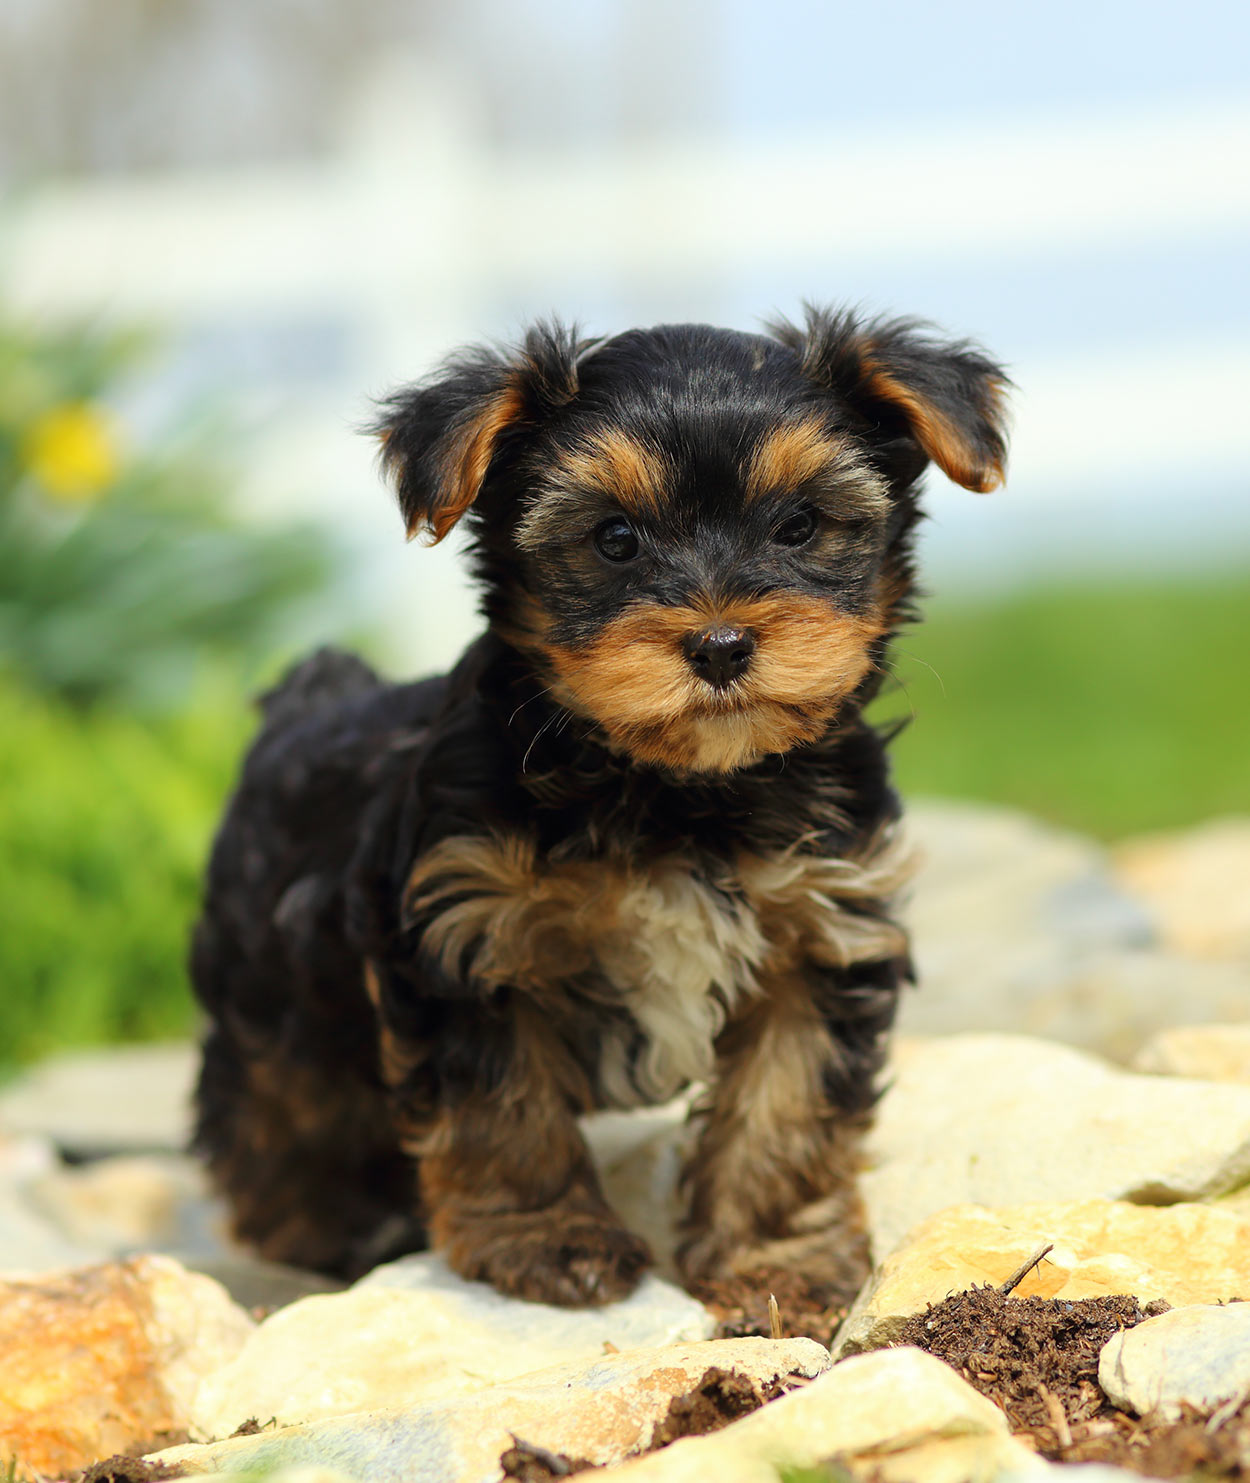 yorkshire terrier - a contender for smallest dog in the world